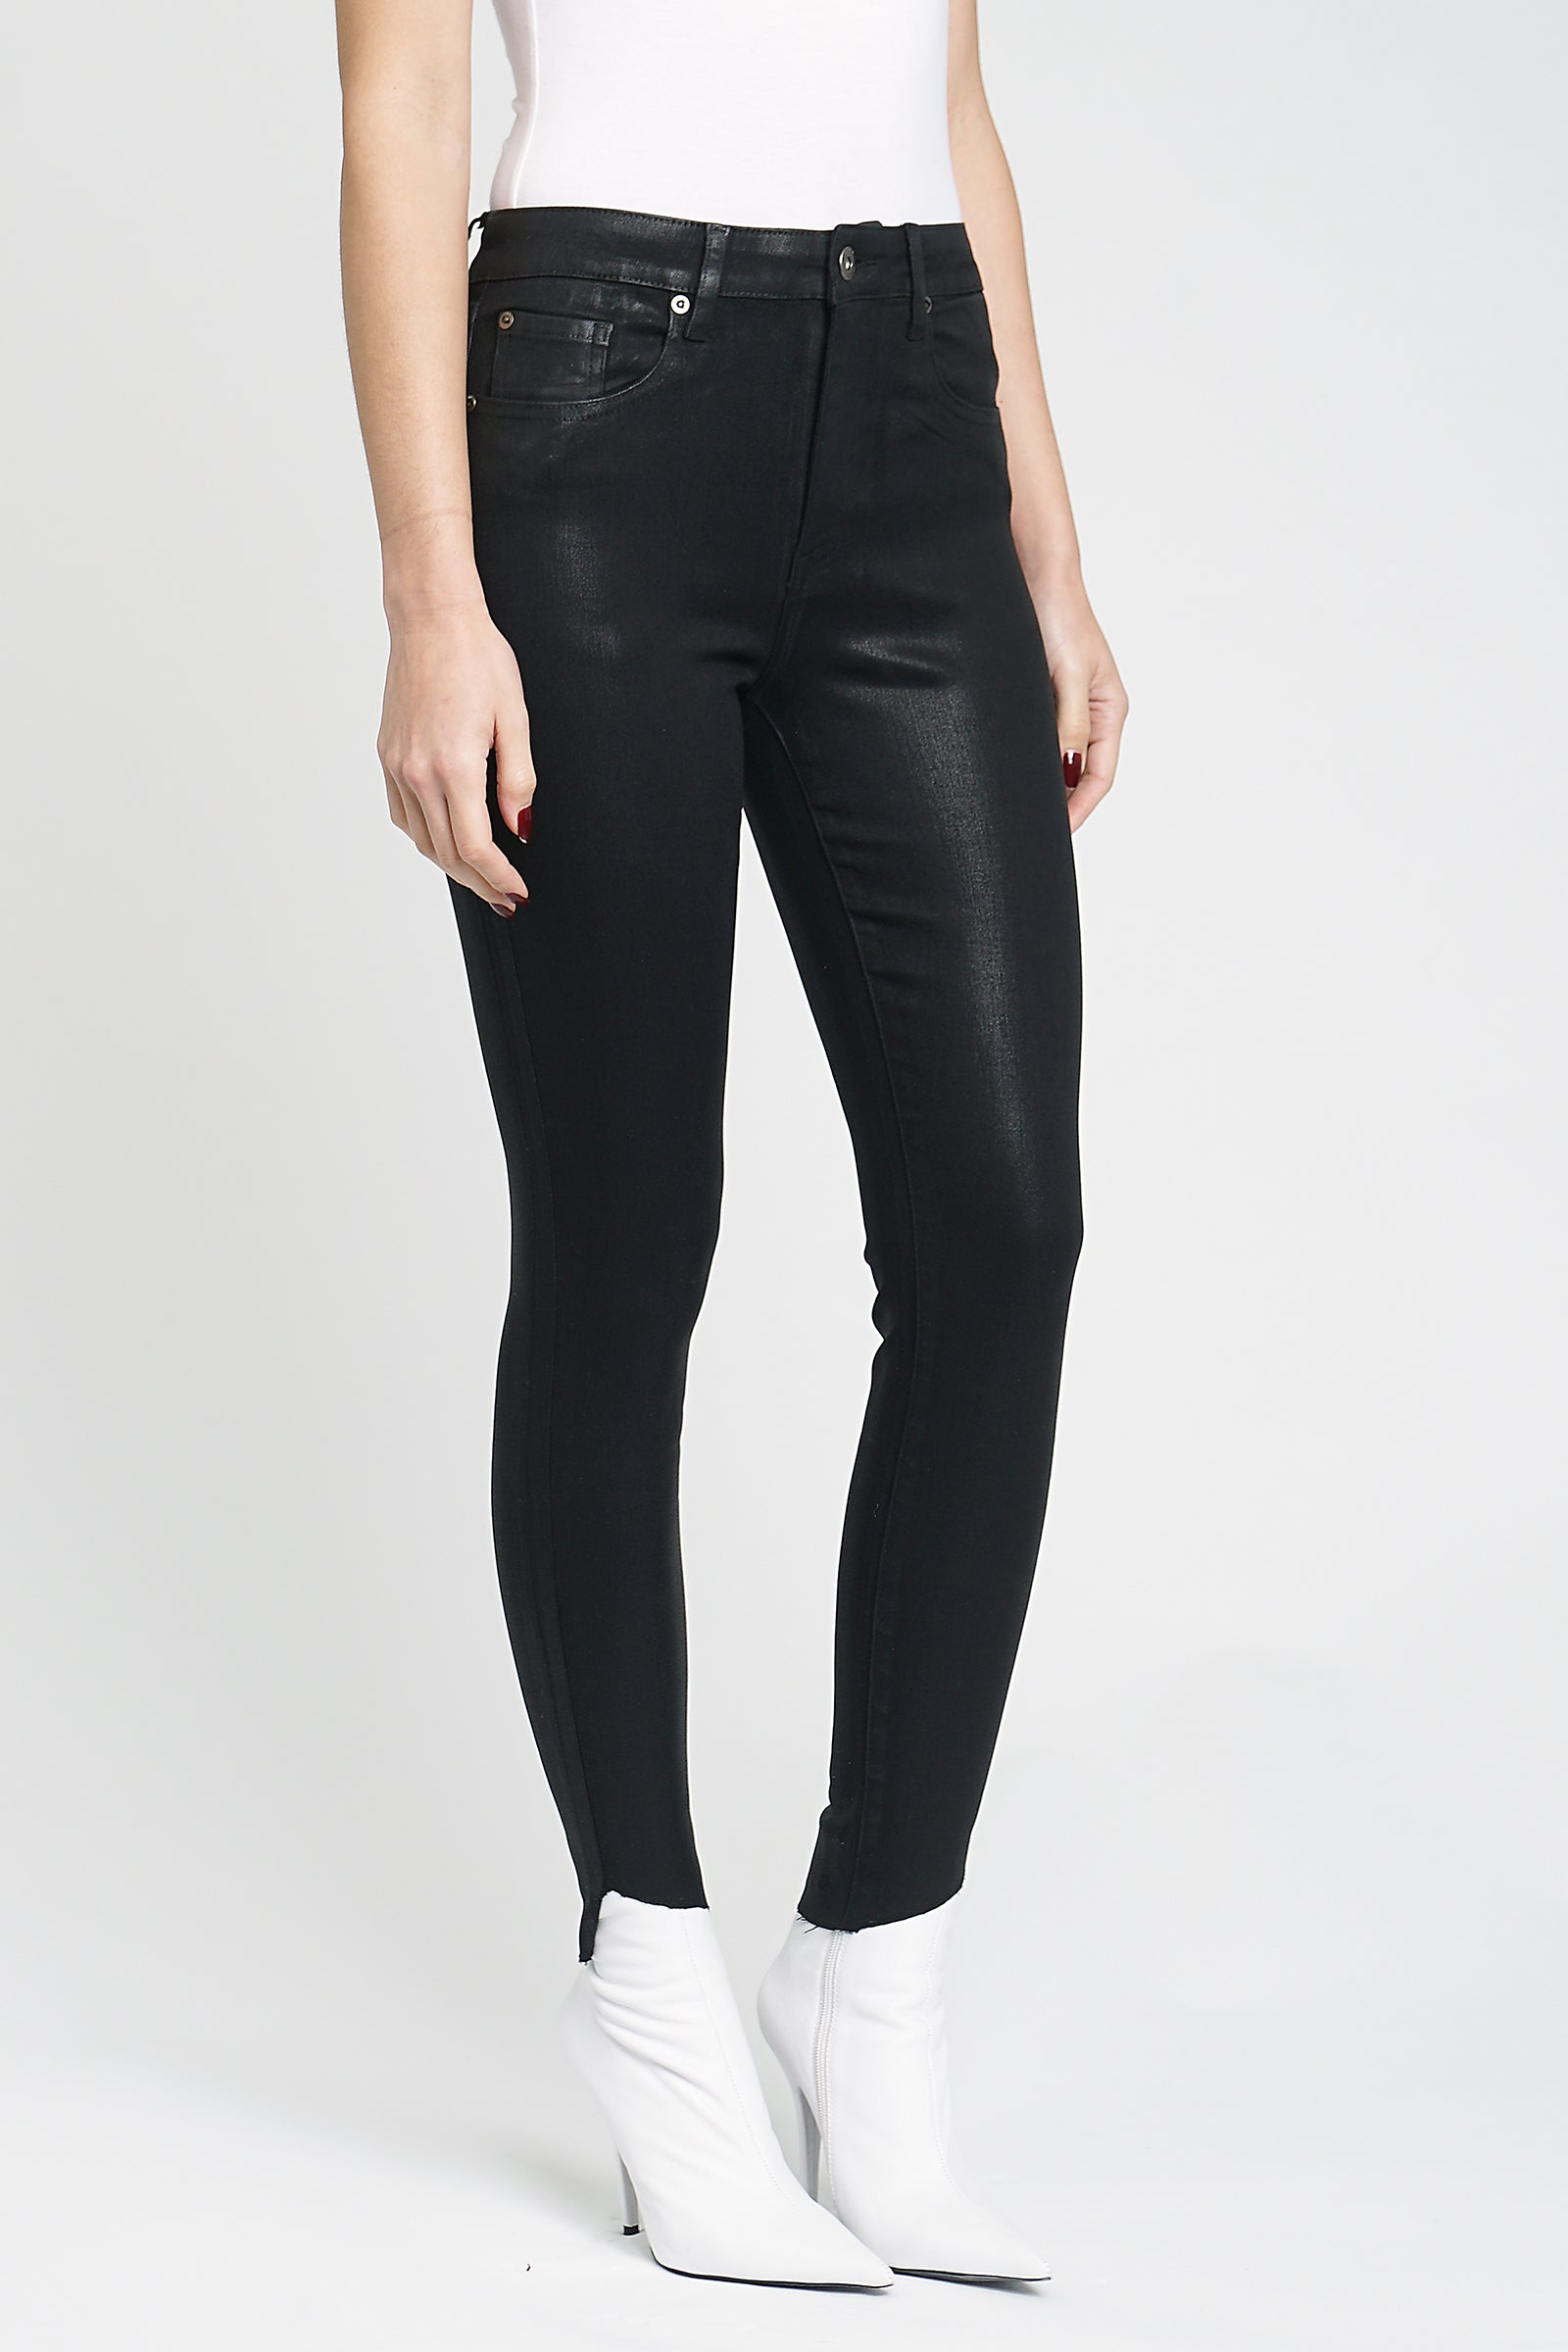 Aline High Rise Skinny - Coated Onyx